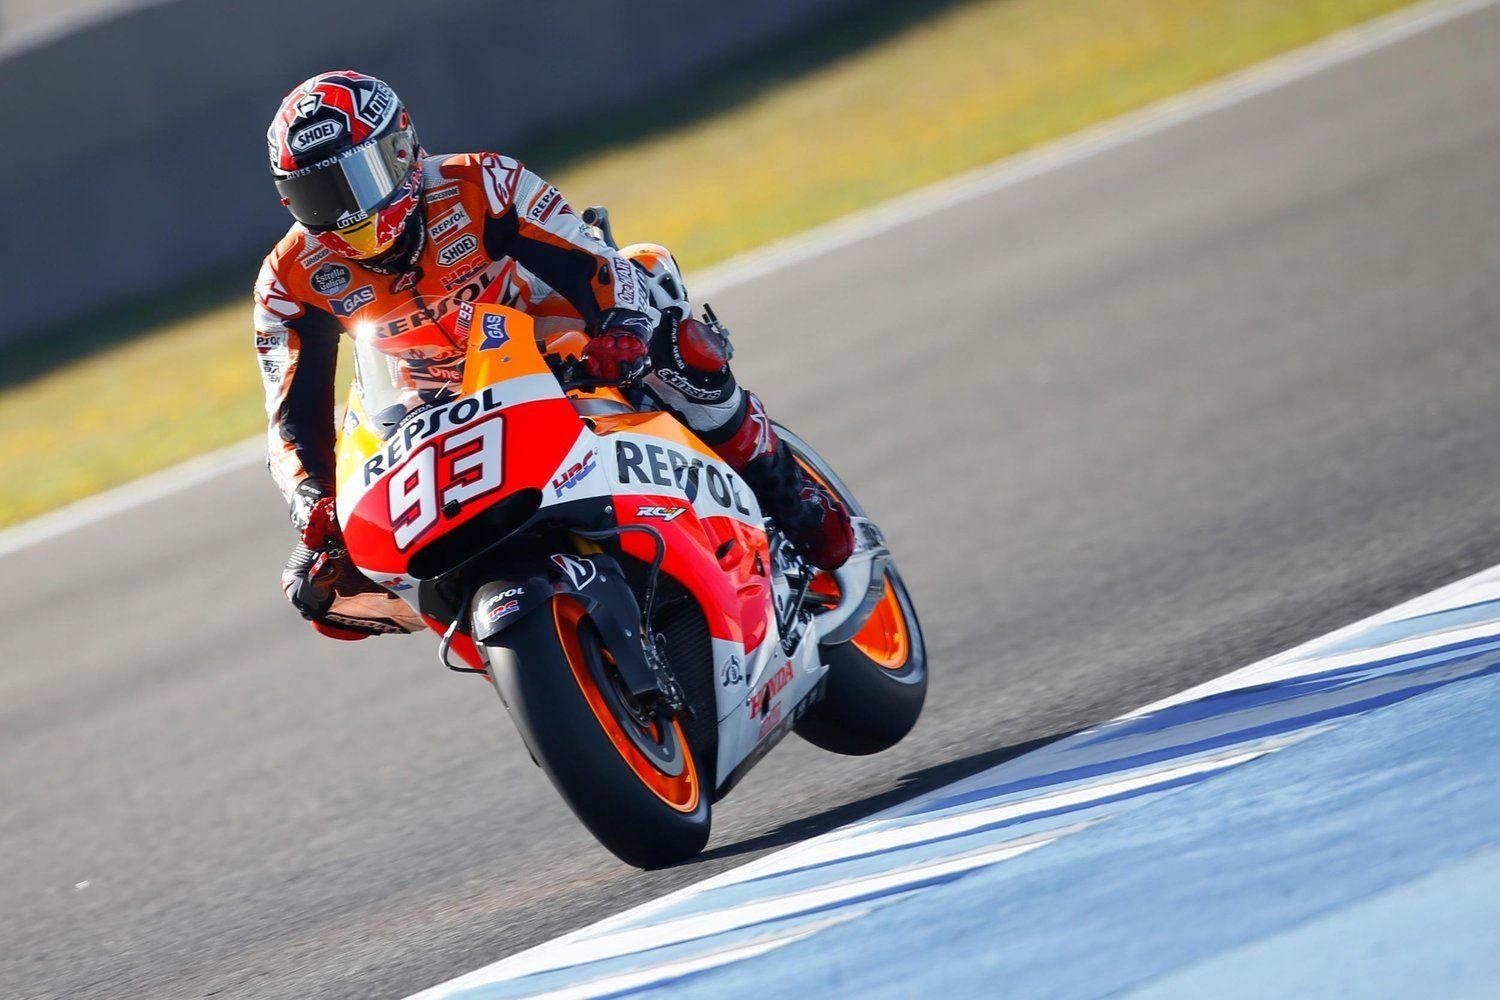 Guide to MotoGP: The 2017 Title Contenders